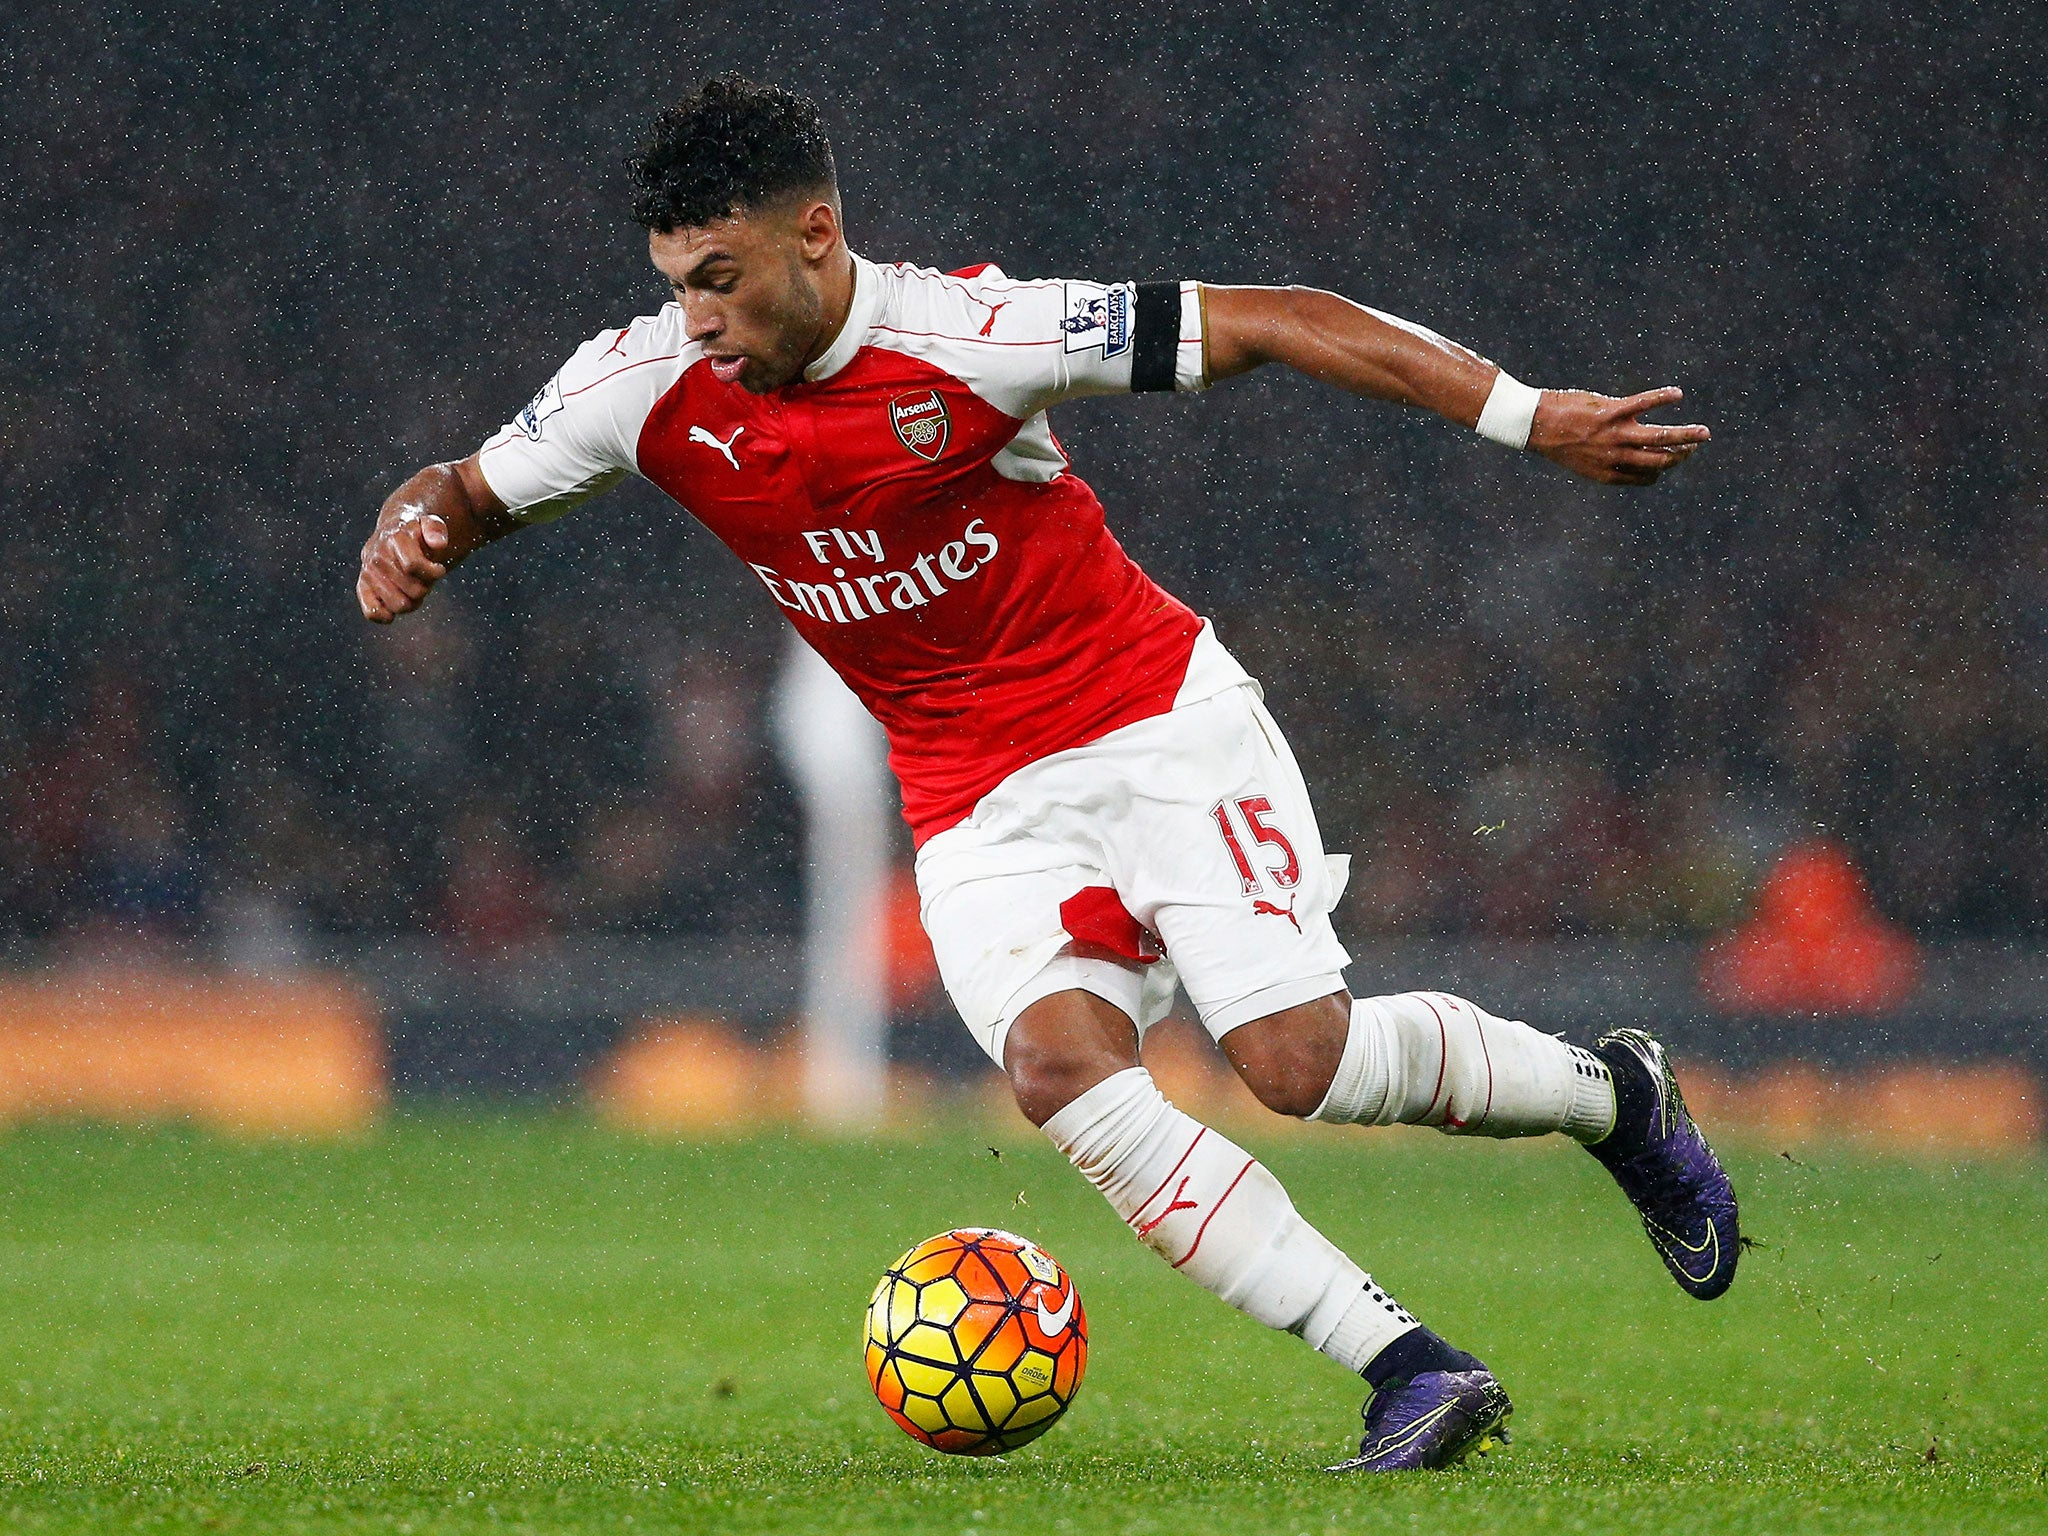 Norwich vs Arsenal: Alex Oxlade-Chamberlain in contention to return but Alexis Sanchez won't be rested